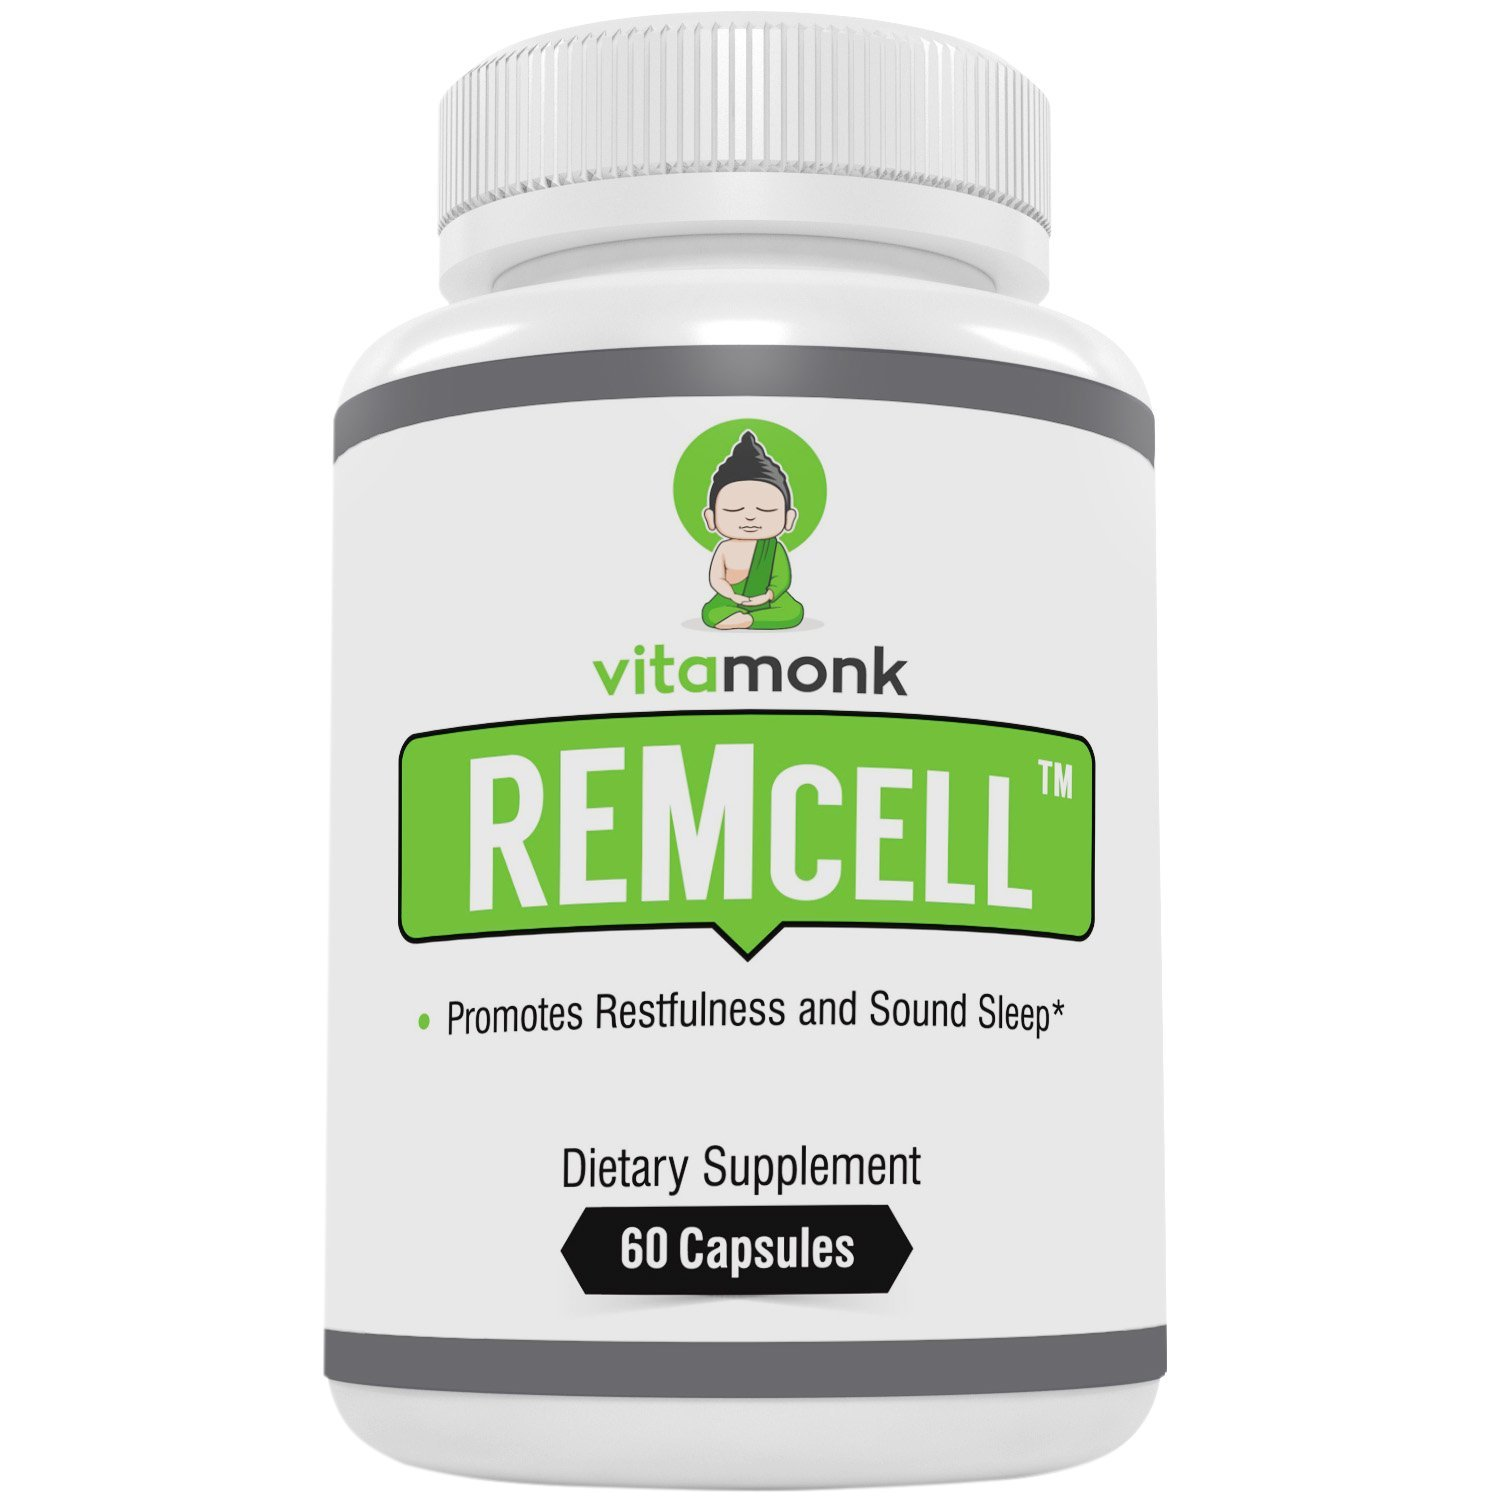 REMcell - #1 Trusted Natural Sleep Aid That Actually Works - by VitaMonk - Effective Sleeping Pills With Natural Ingredients For Restful Sleep With No Hangover Feeling - No Artificial Fillers